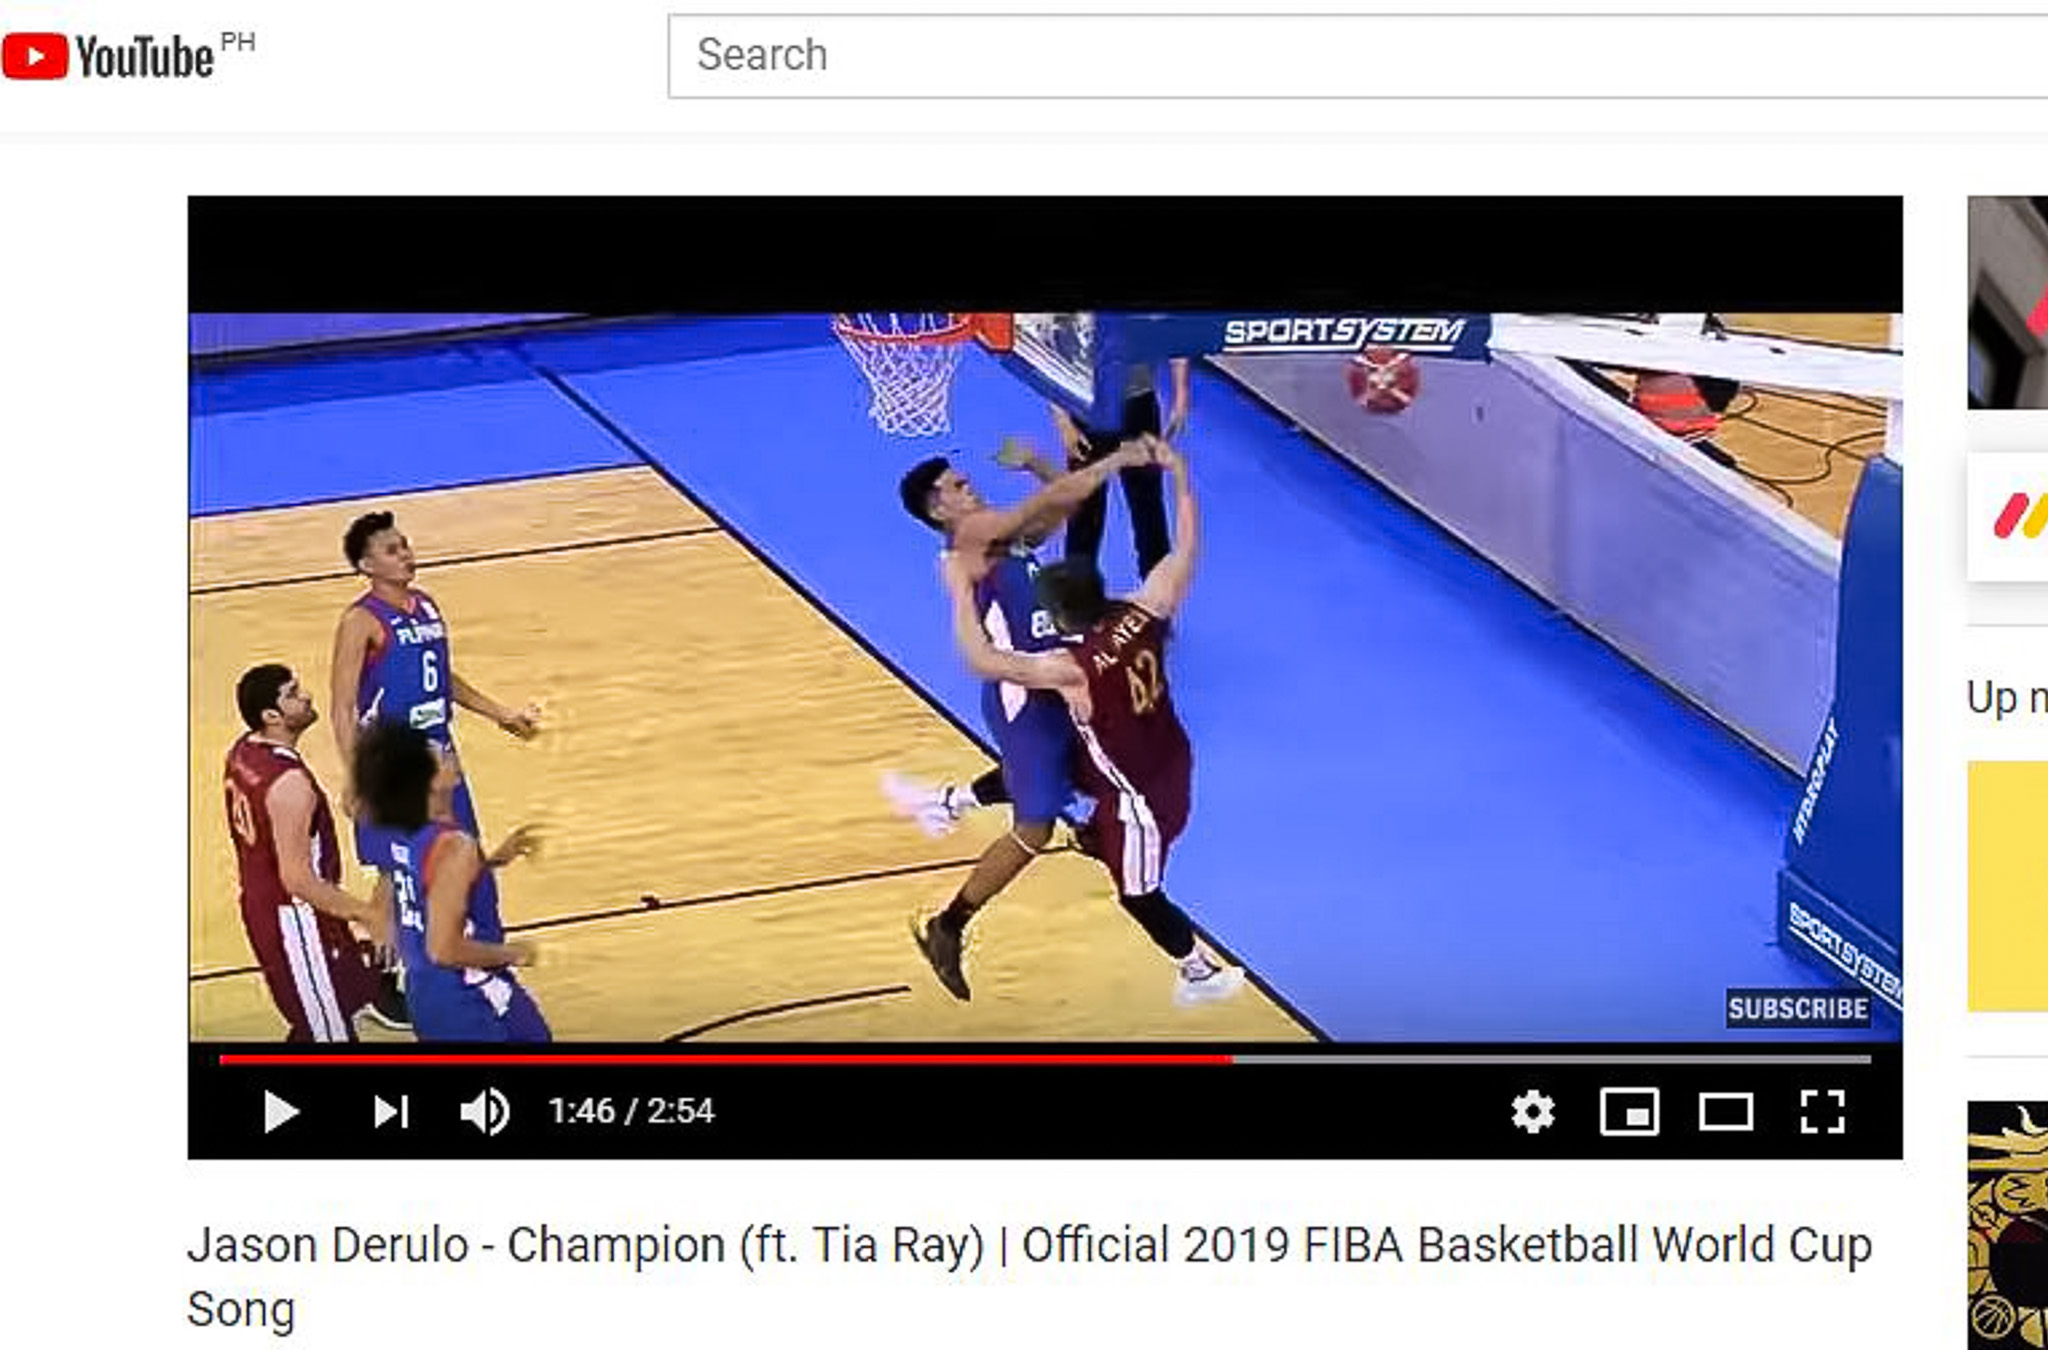 Thirdy Ravena stars in the official 2019 FIBA World Cup video